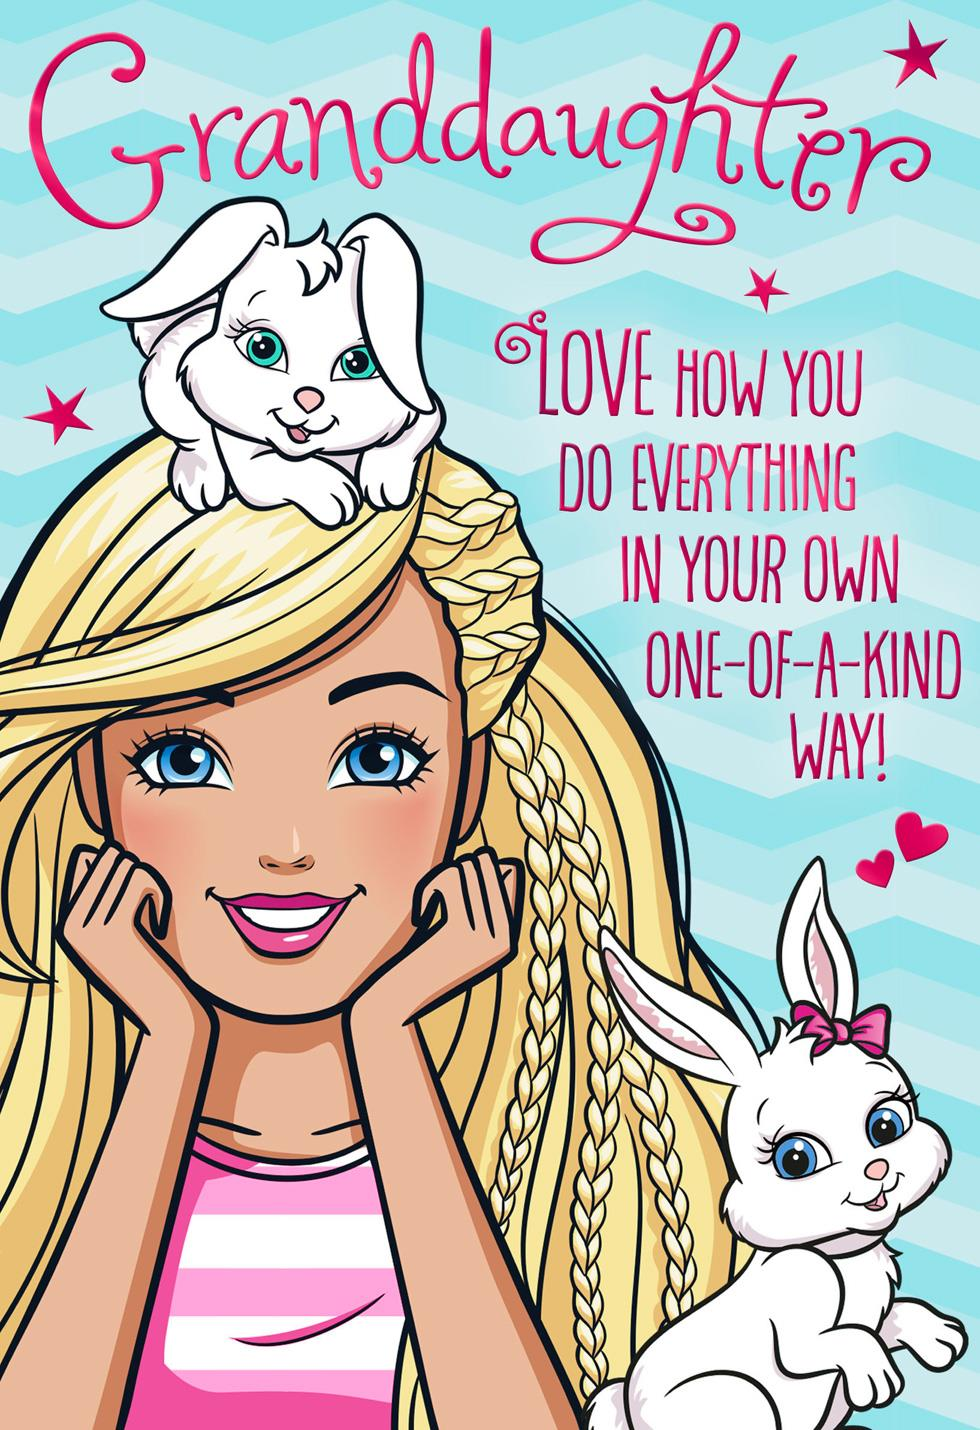 barbie u2122 and bunnies easter card for granddaughter